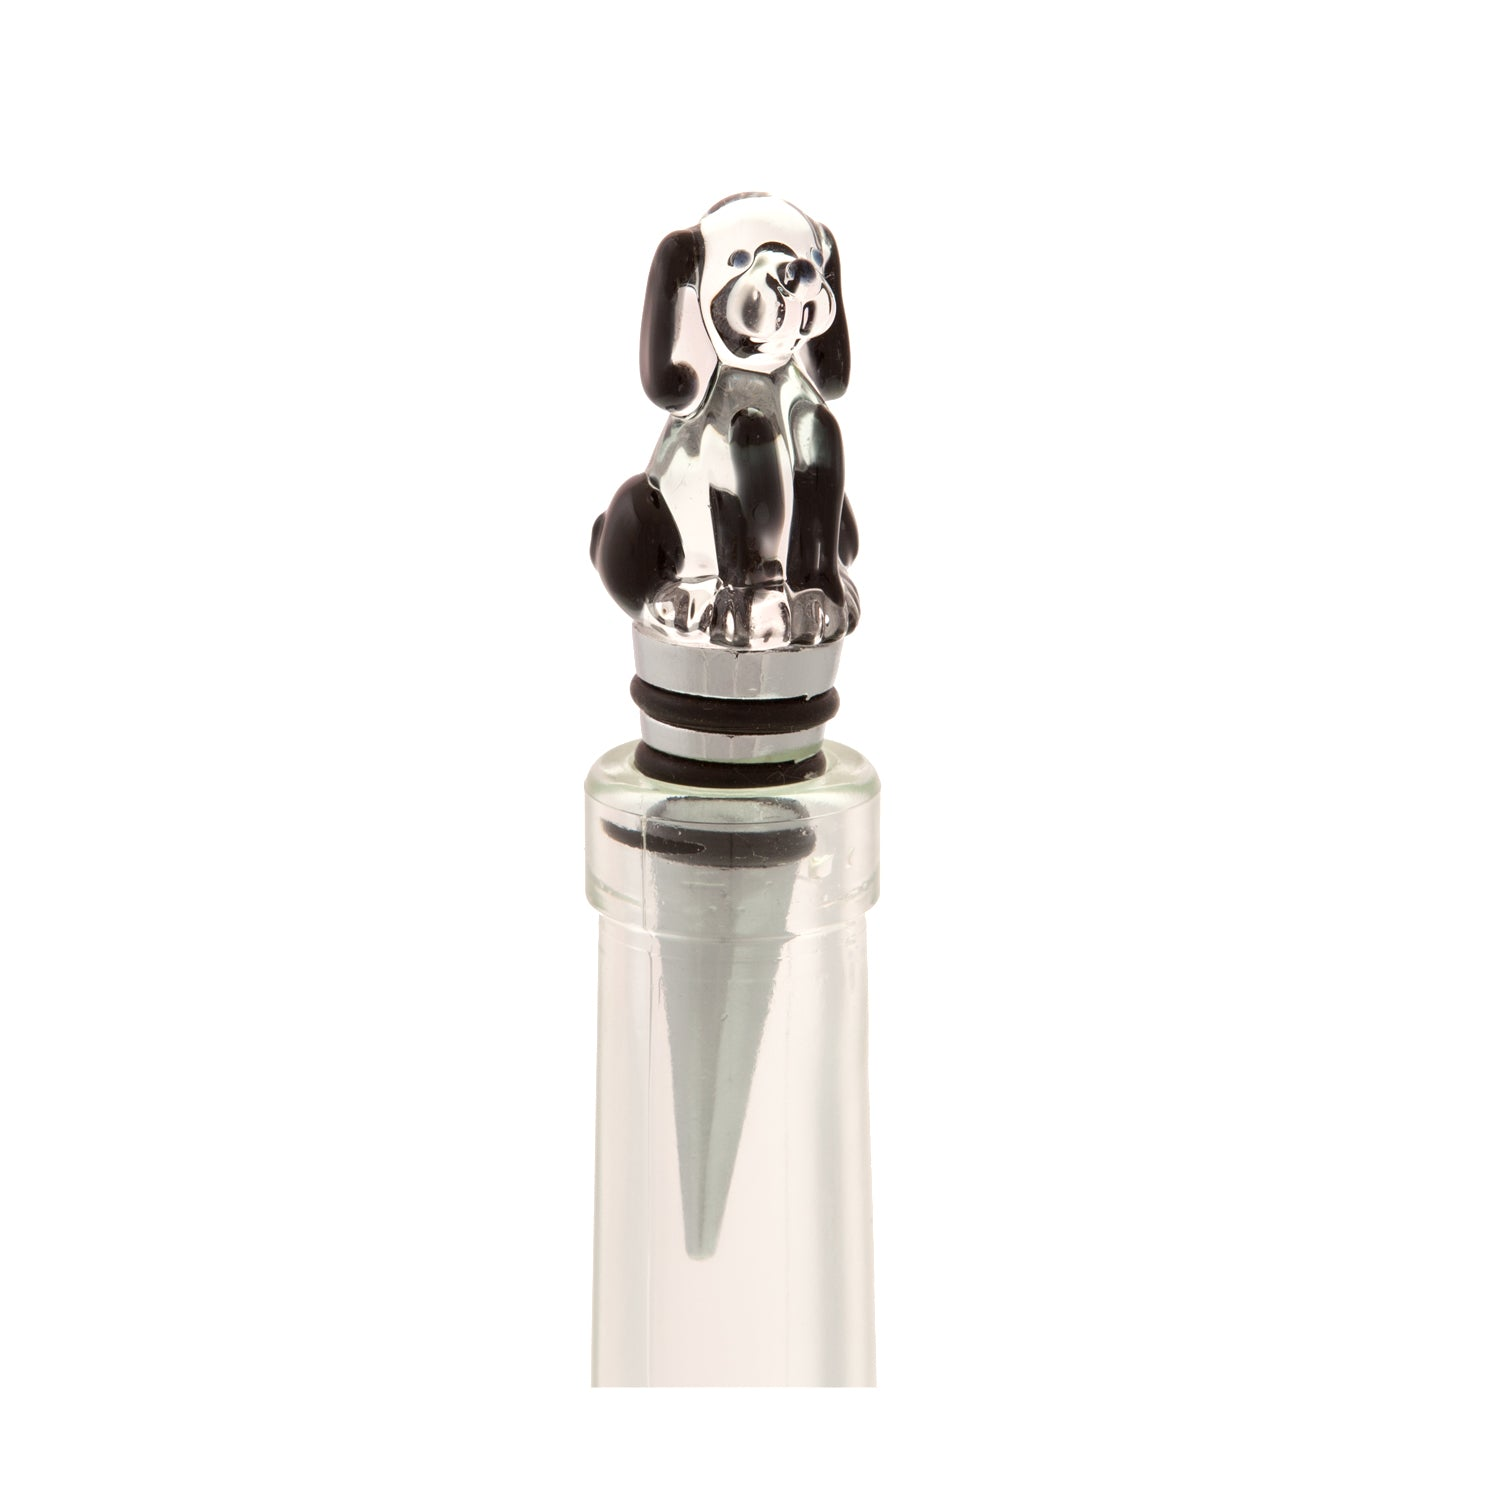 DogKrazy.Gifts – Glass Dog Bottle Stopper – clear glass with black details part of the huge range of dog themed gifts available from Dog Krazy Gifts